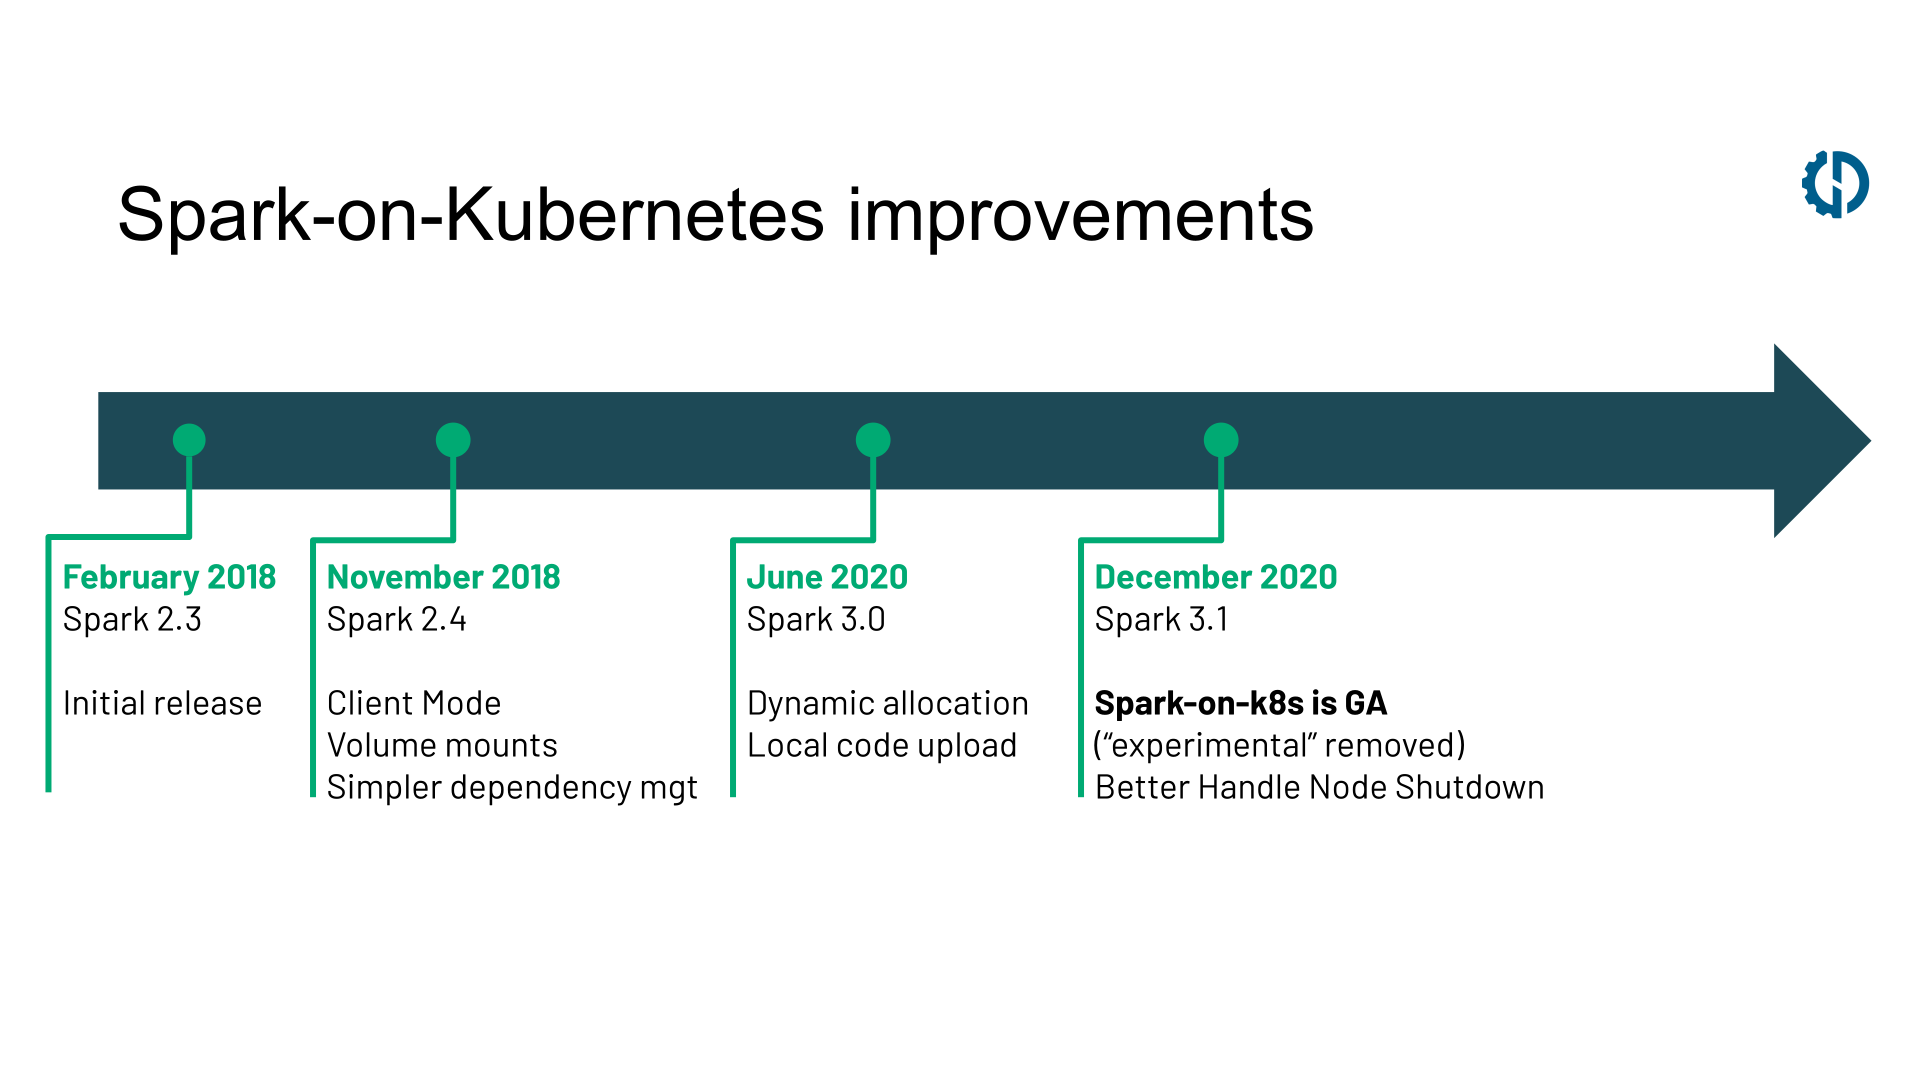 Timeline of improvements to Spark on Kubernetes